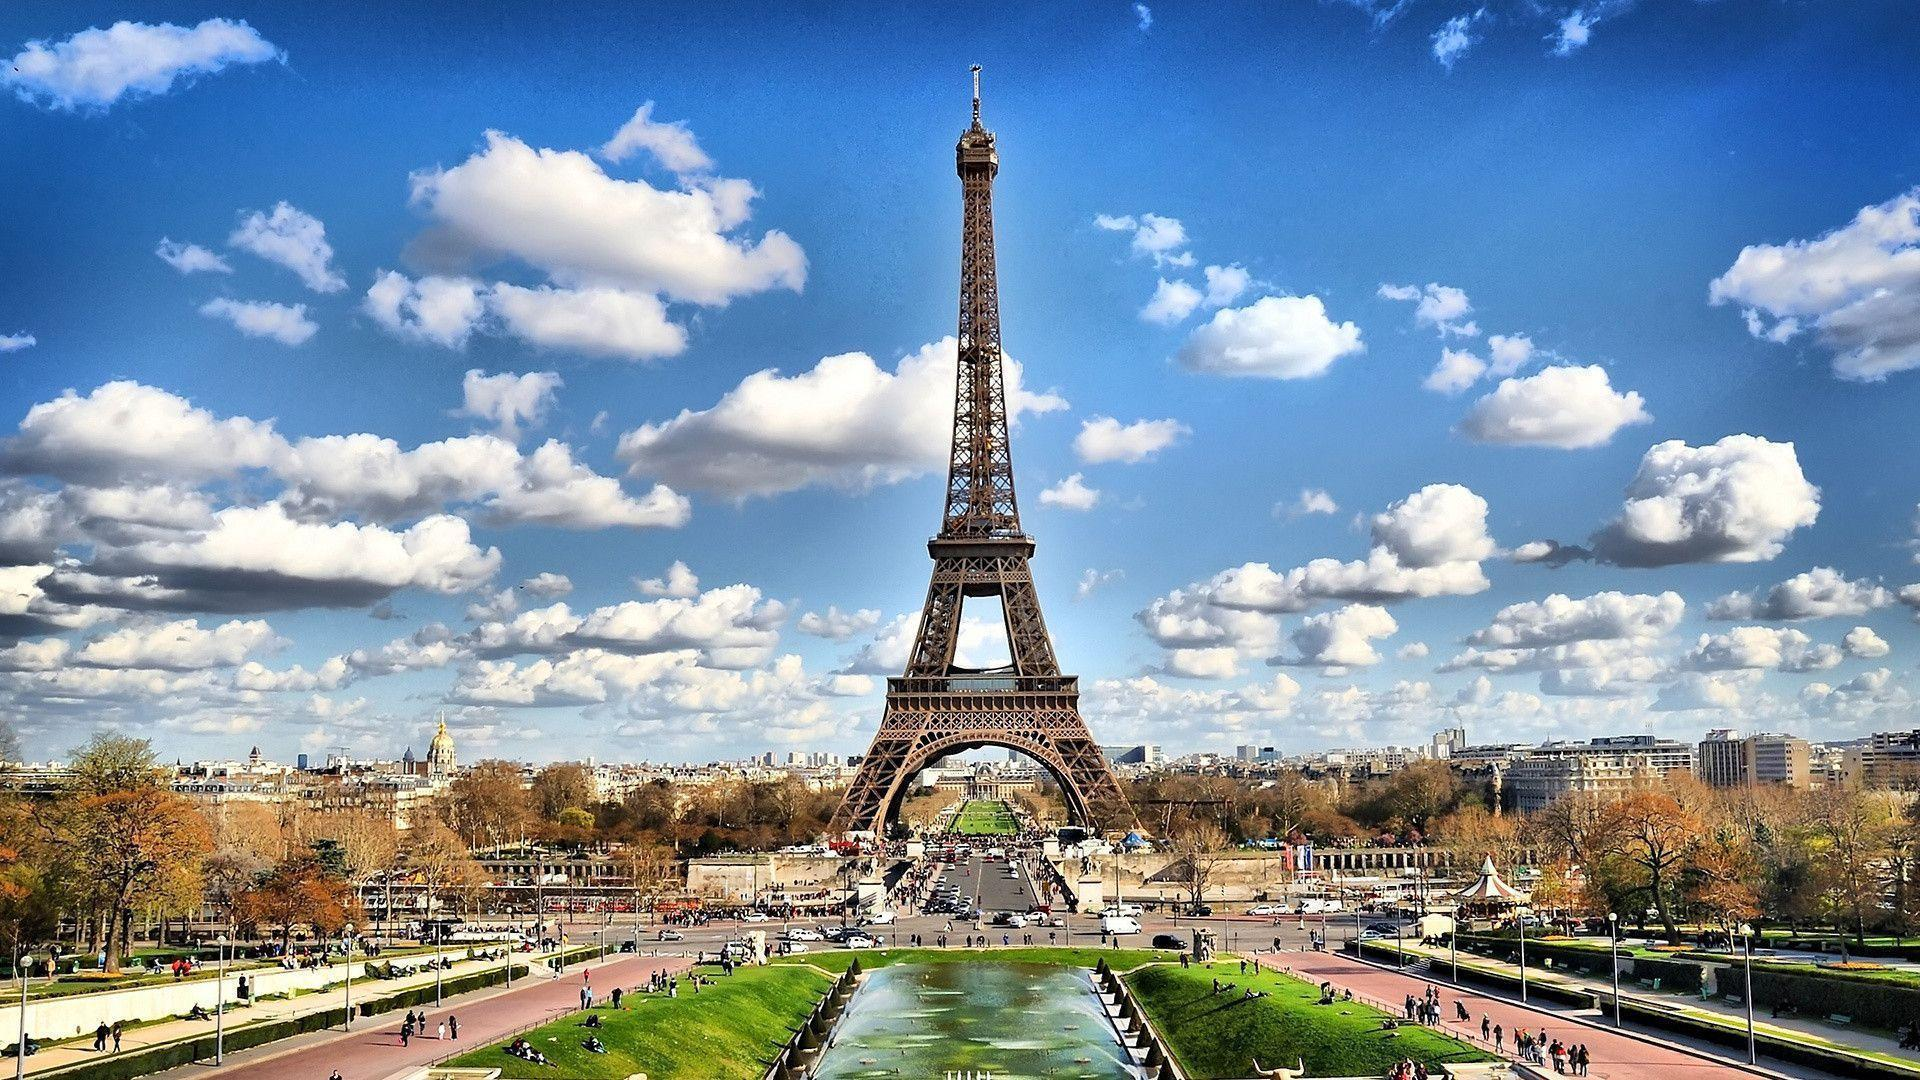 paris wallpaper widescreen, wallpapers of paris france